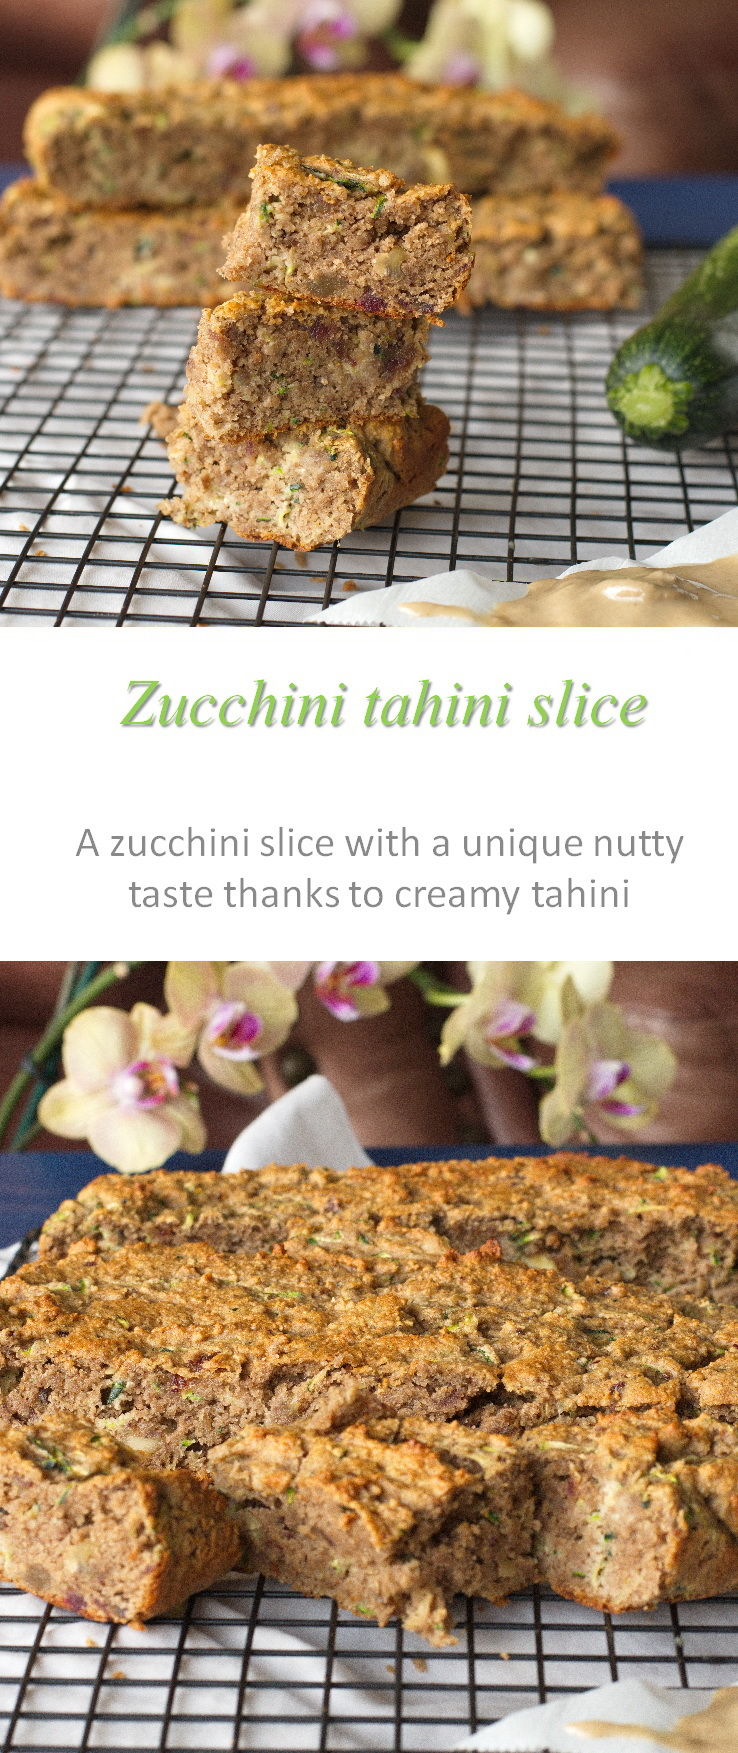 A healthy, Paleo-friendly zucchini tahini slice with a unique nutty taste and texture - a winner all round! #zucchini #tahini #cookathome #glutenfree #dairyfree #noaddedsugar